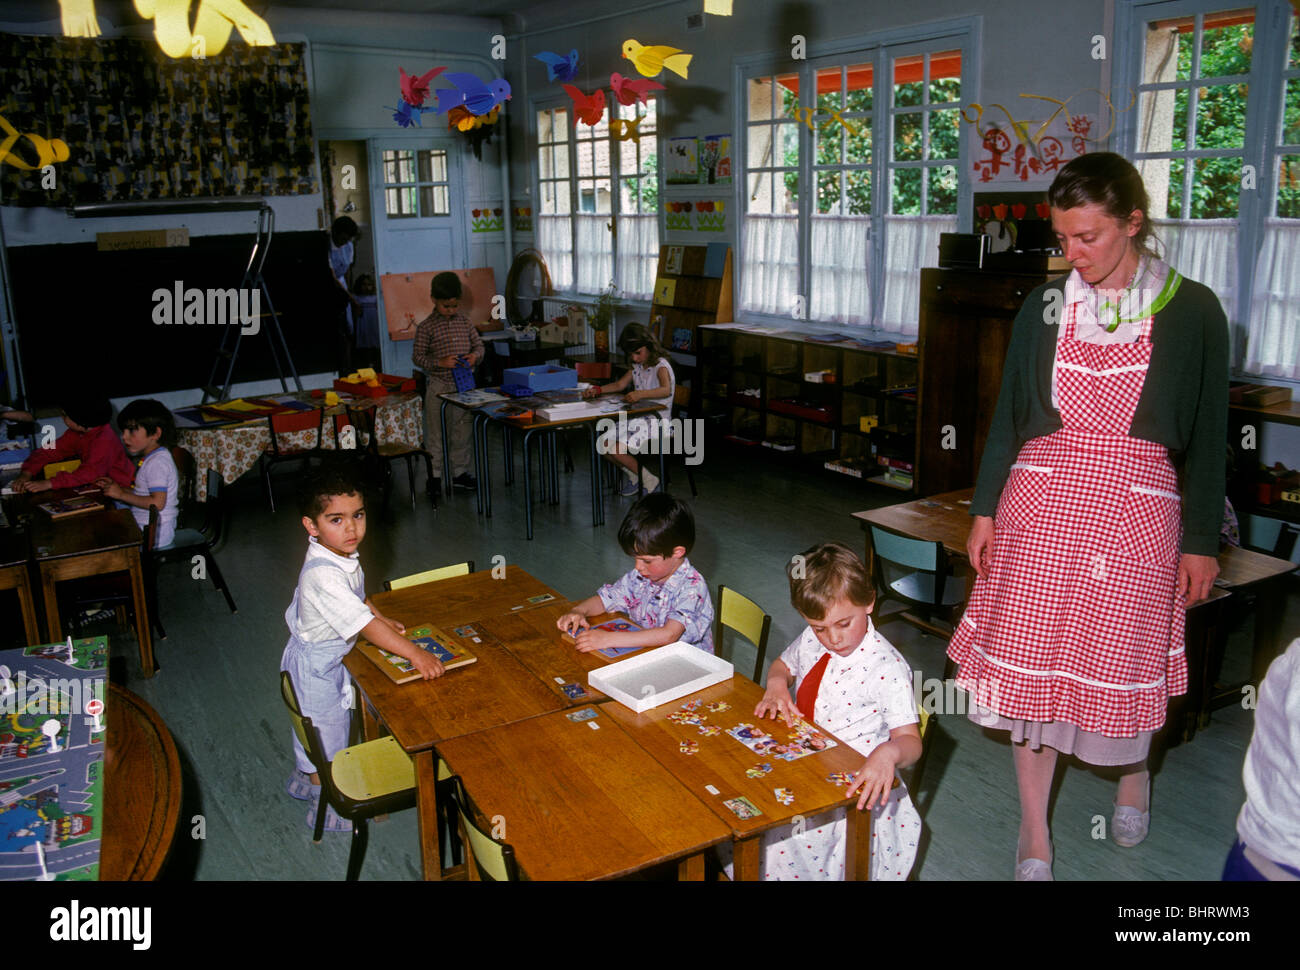 French woman, French teacher, French students, boys, girls, French children, preschool, Verneuil-sur-Seine, Ile - Stock Image